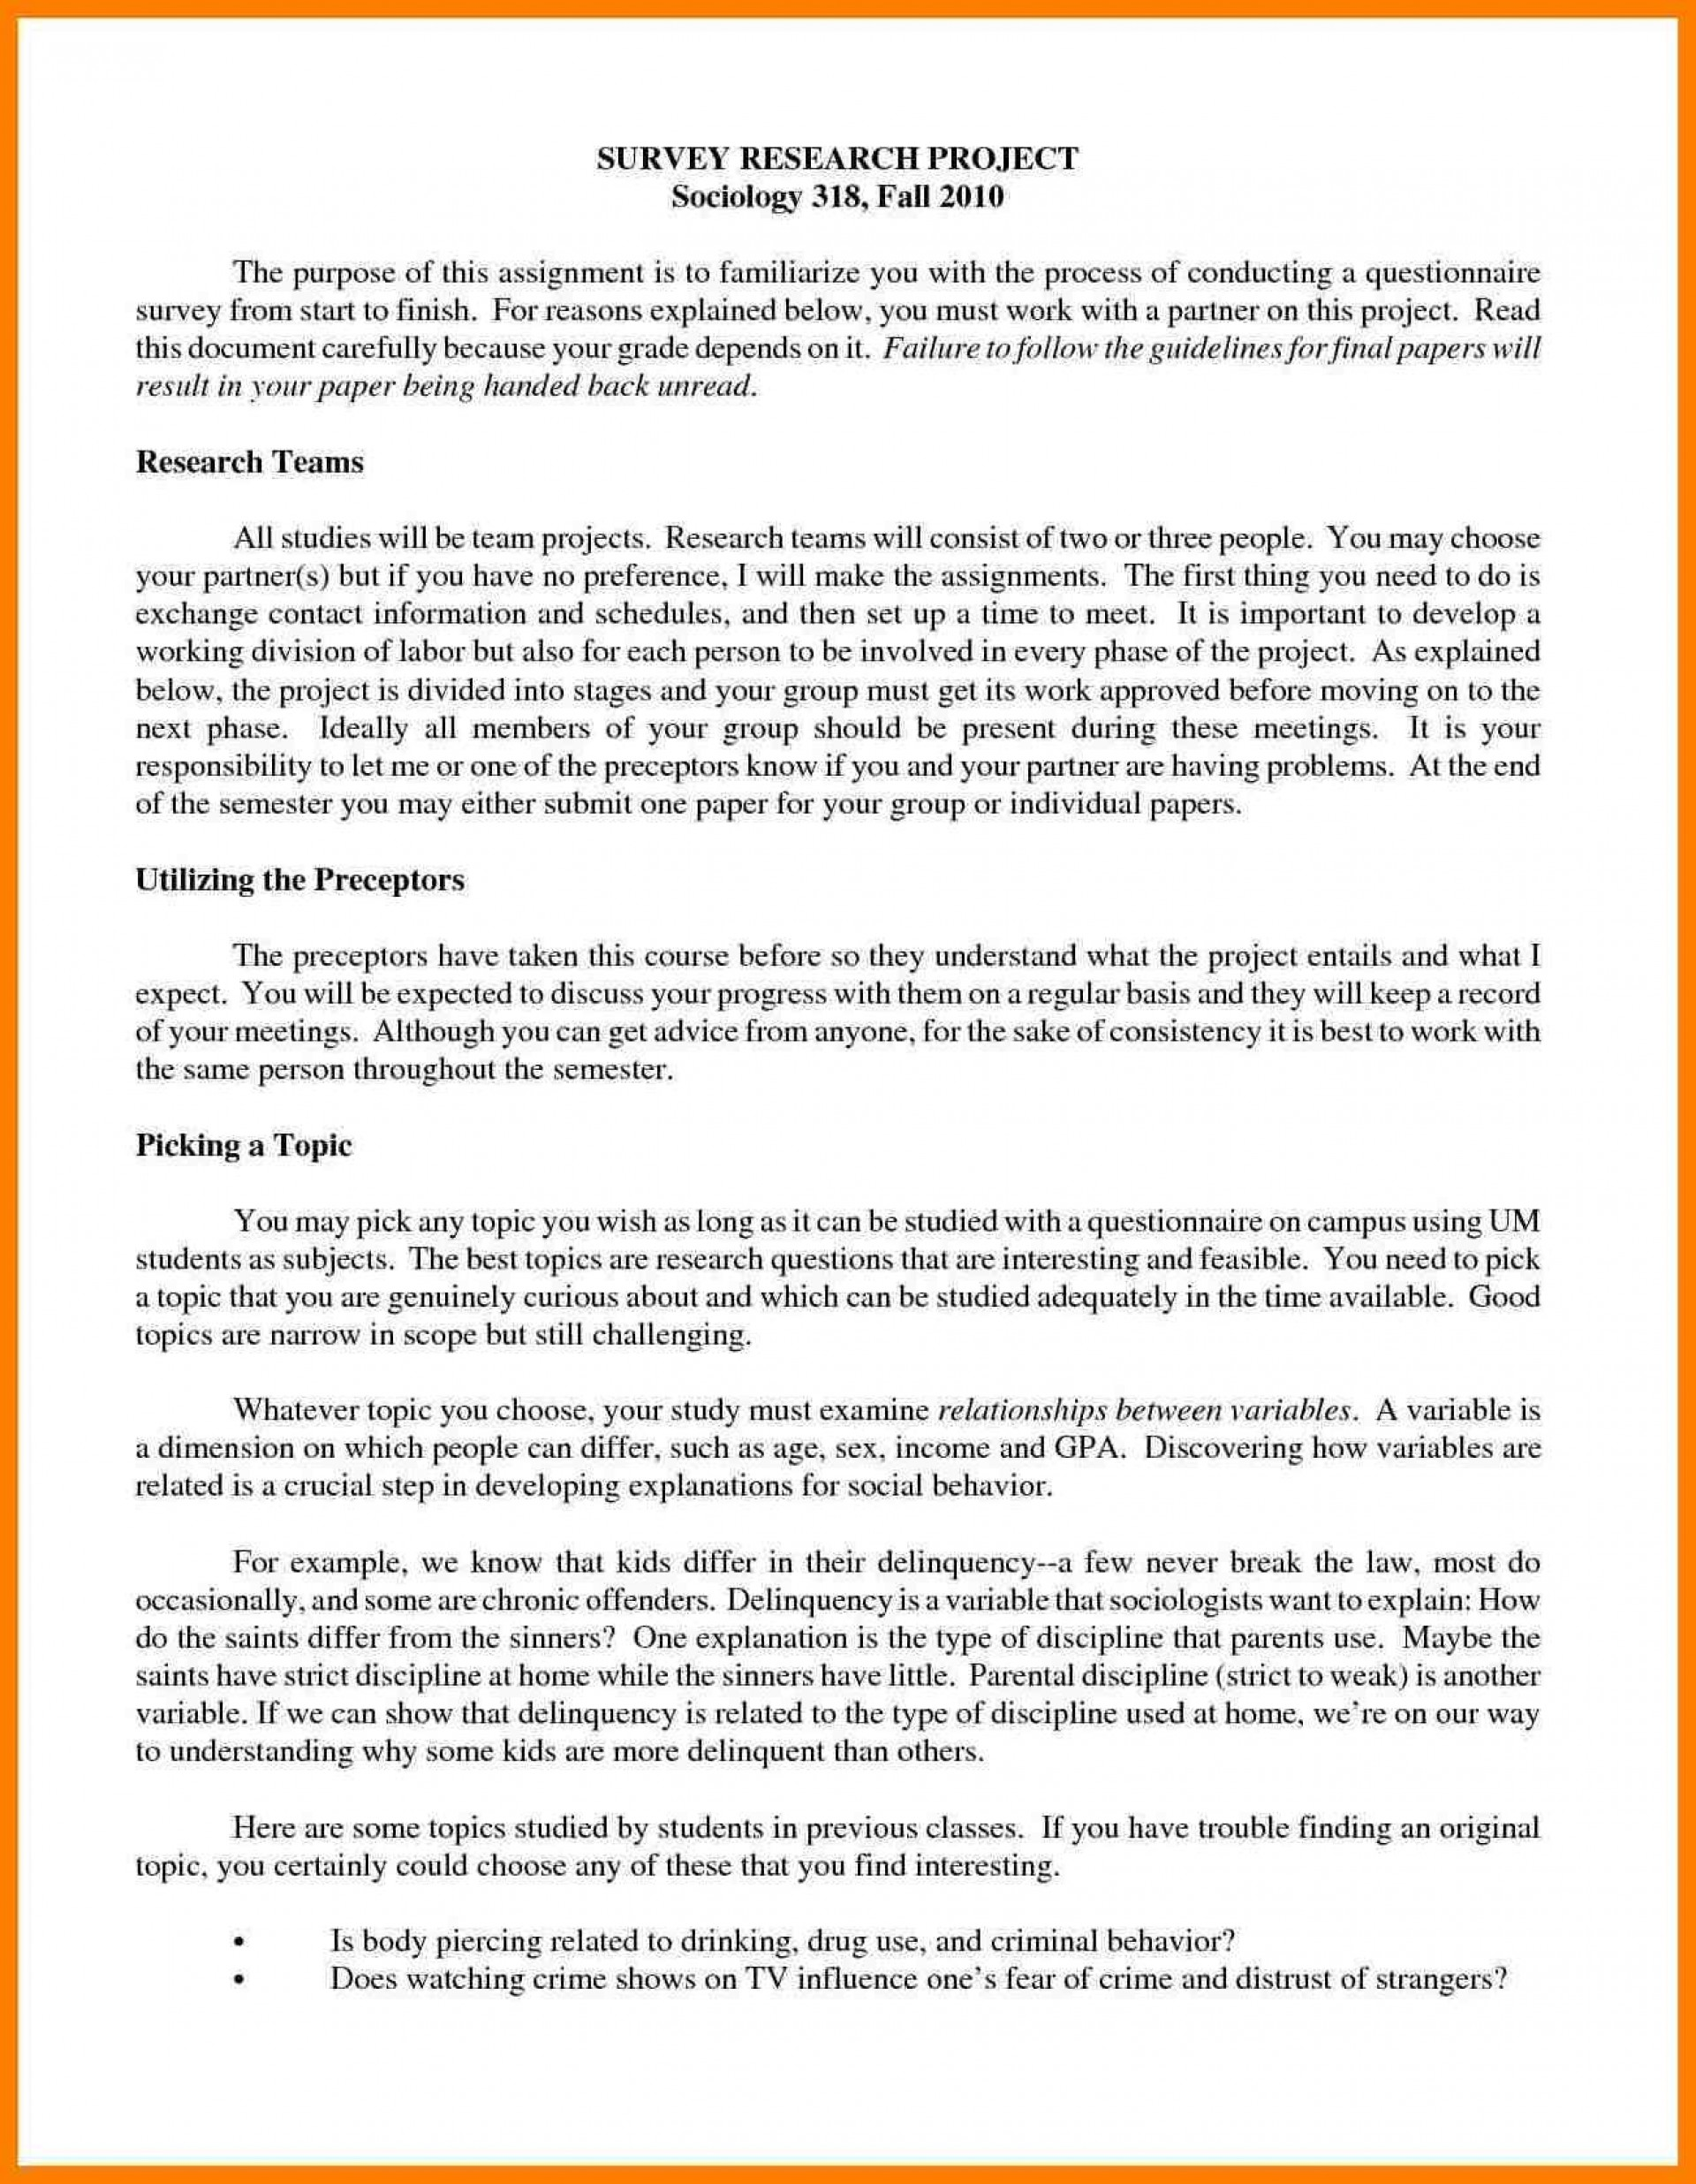 003 Essay Example Financial Aid For College Scholarship